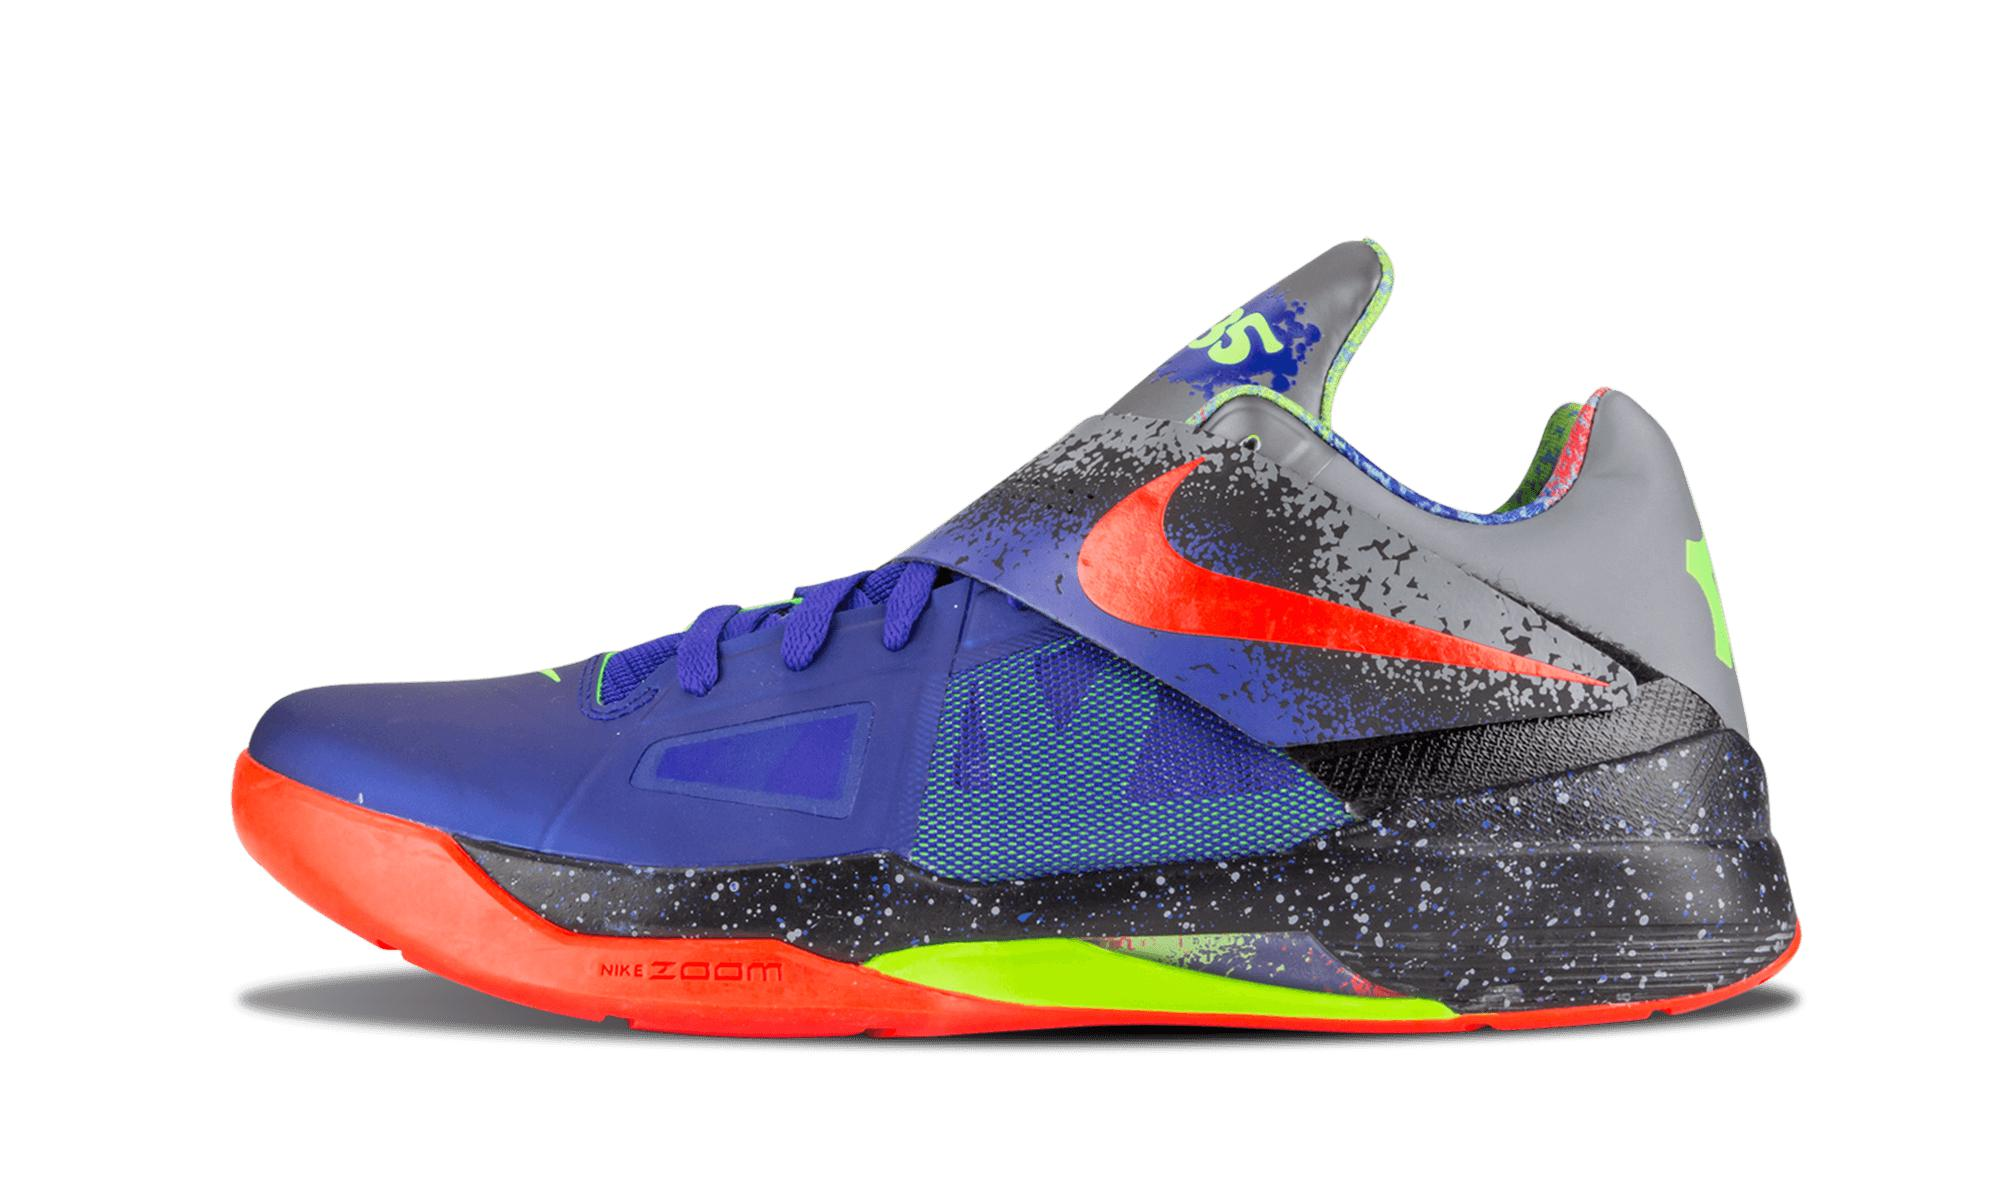 229f41631749 Nike Zoom Kd 4 Concord bright Crimson  nerf  in Blue for Men - Lyst